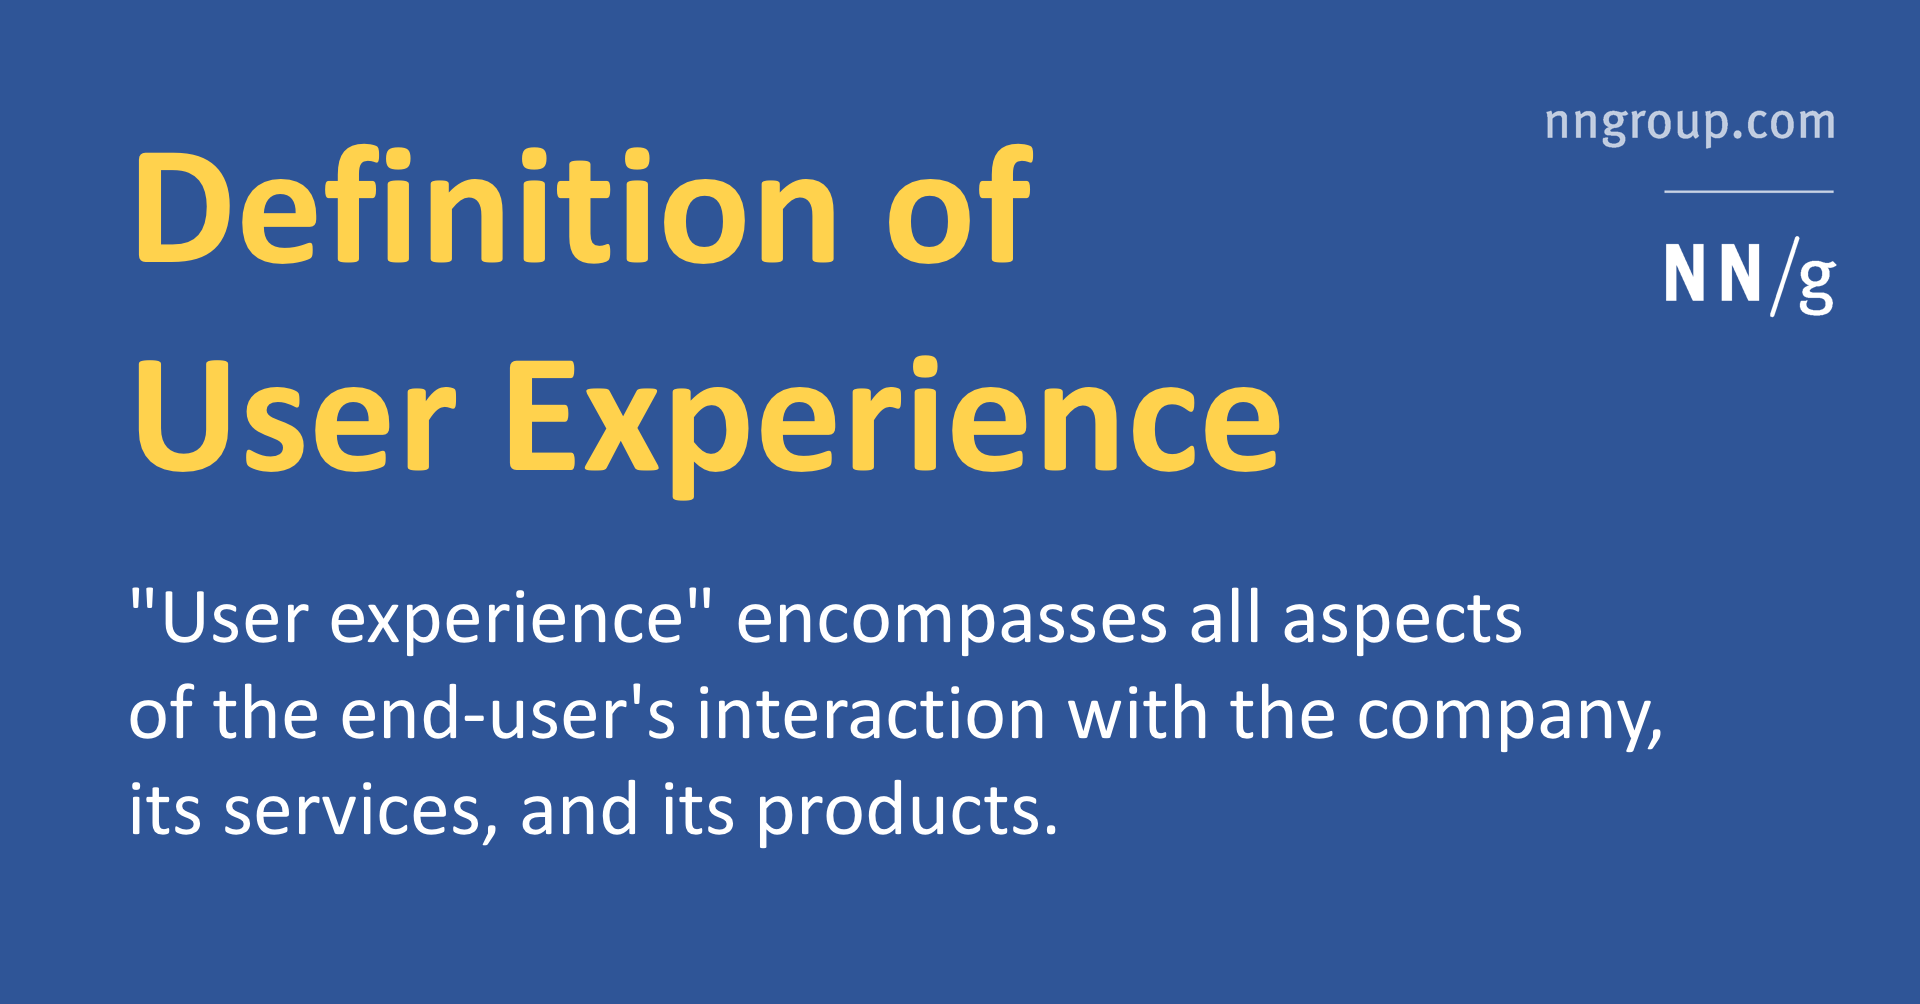 The Definition of User Experience (UX)